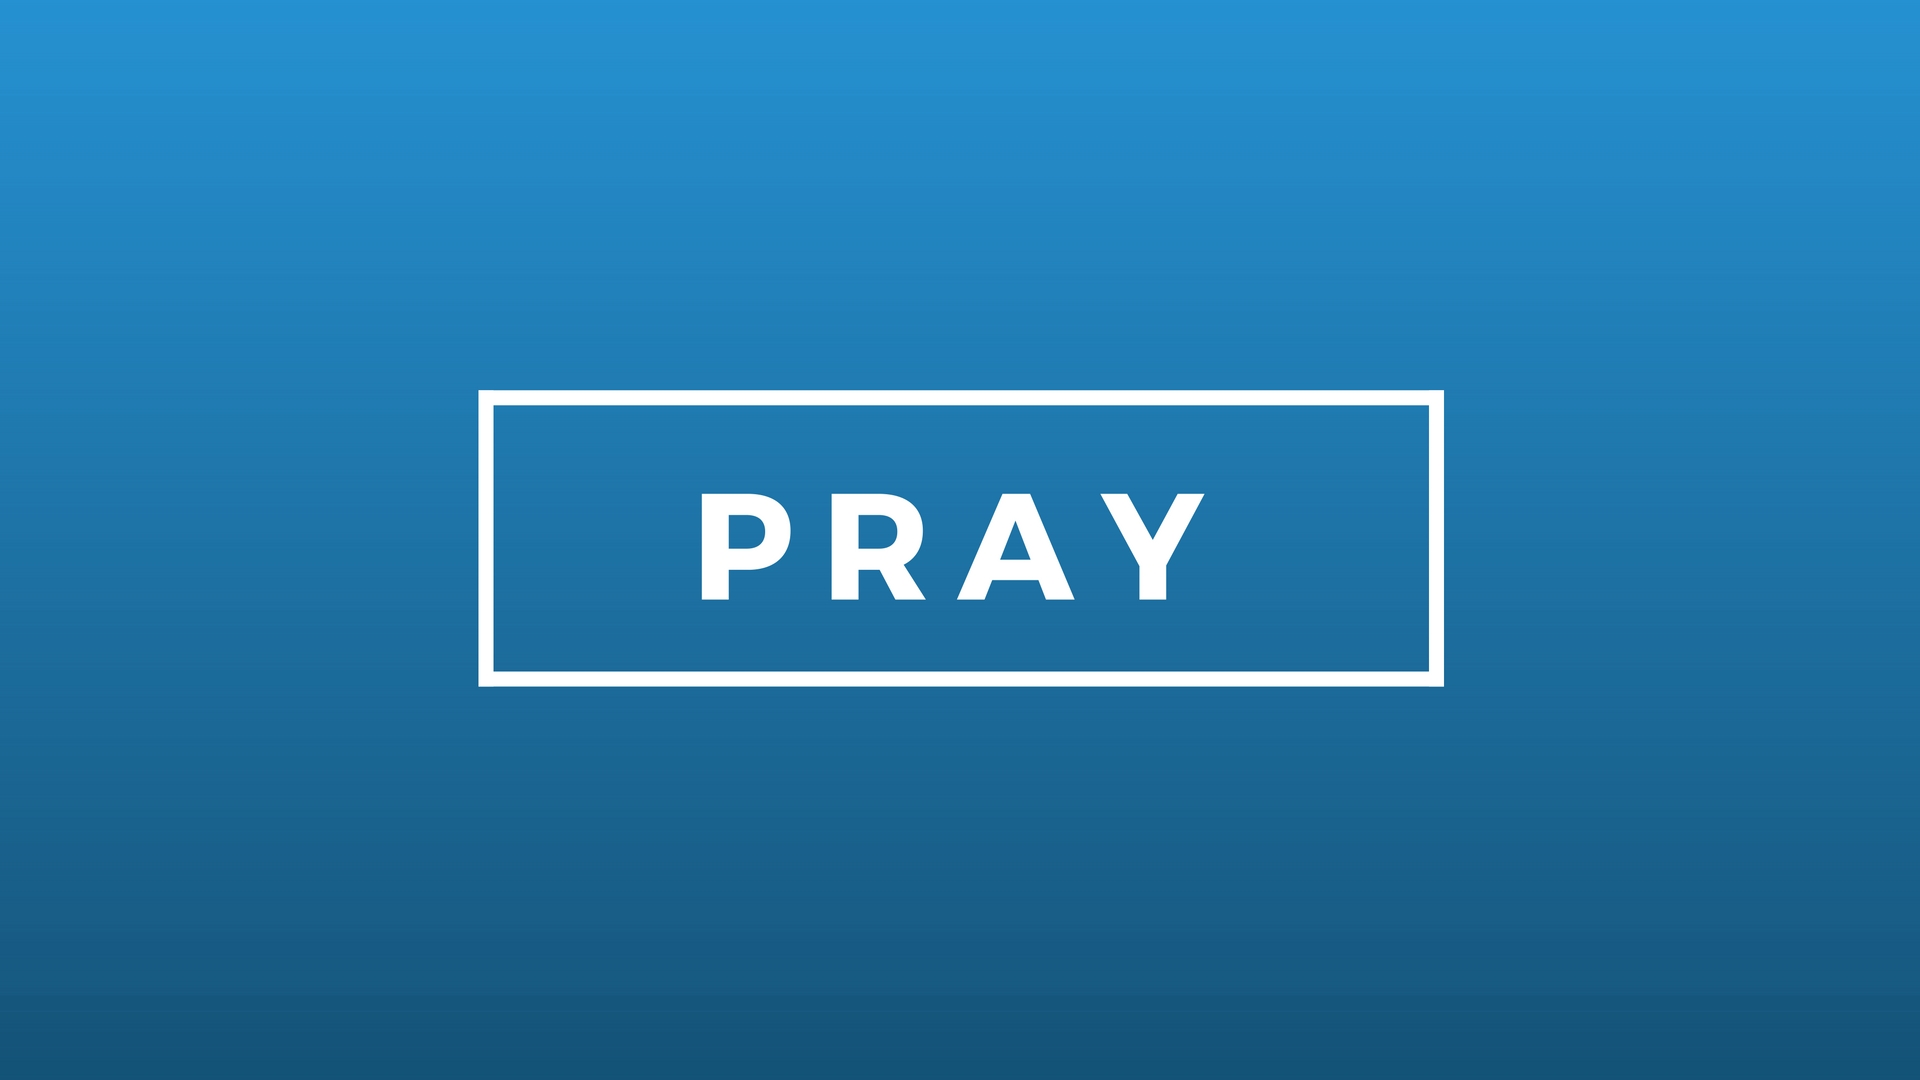 PRAY - JAN 2017 SERMON SERIES IMAGES - PRAY.jpg